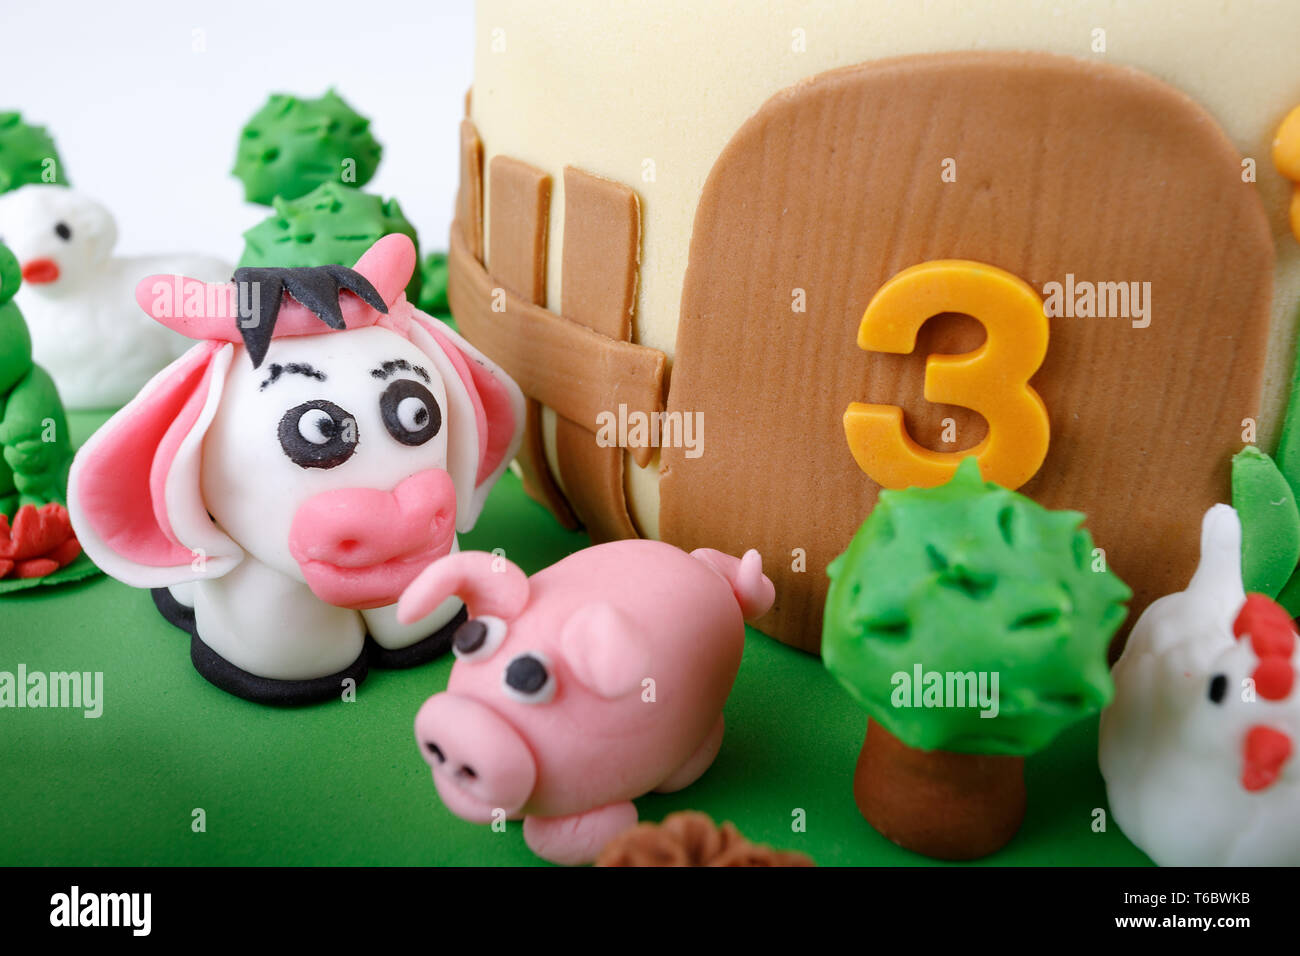 Fantastic Animal Farm Birthday Cake Cake Stock Photos Animal Farm Birthday Birthday Cards Printable Opercafe Filternl